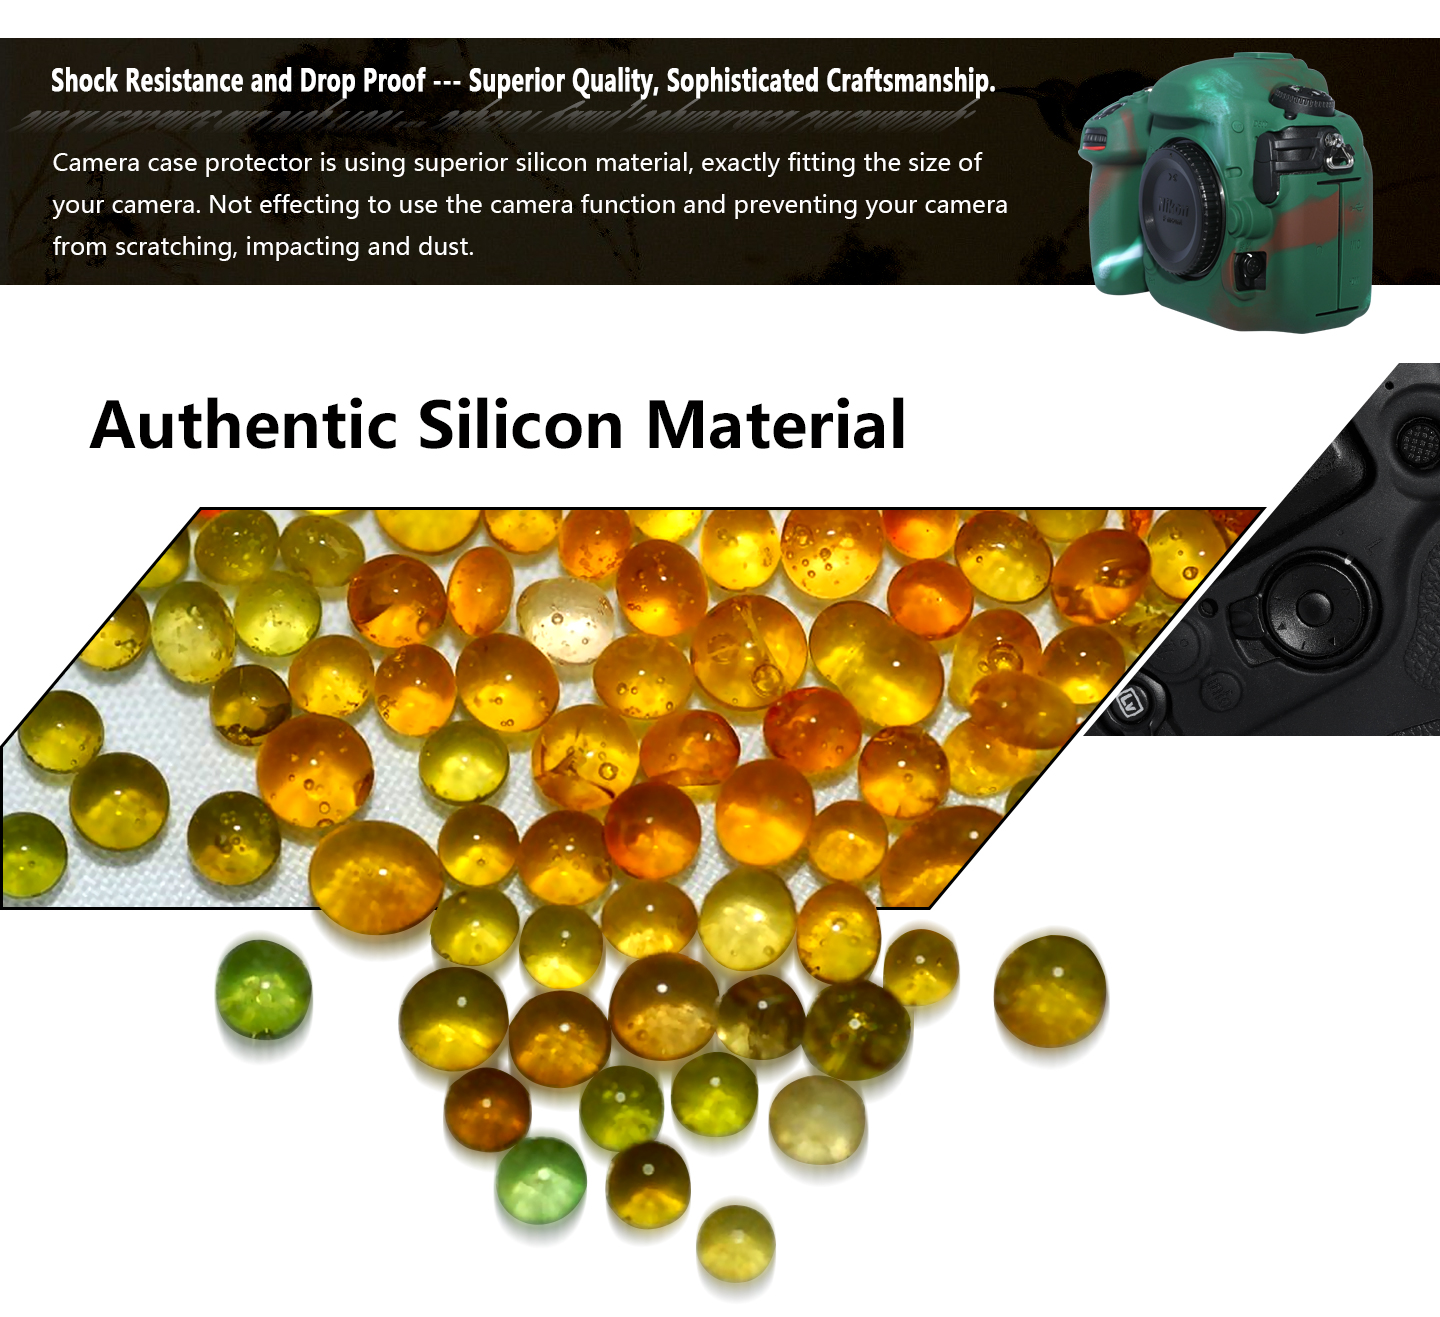 Authentic Silicon Material